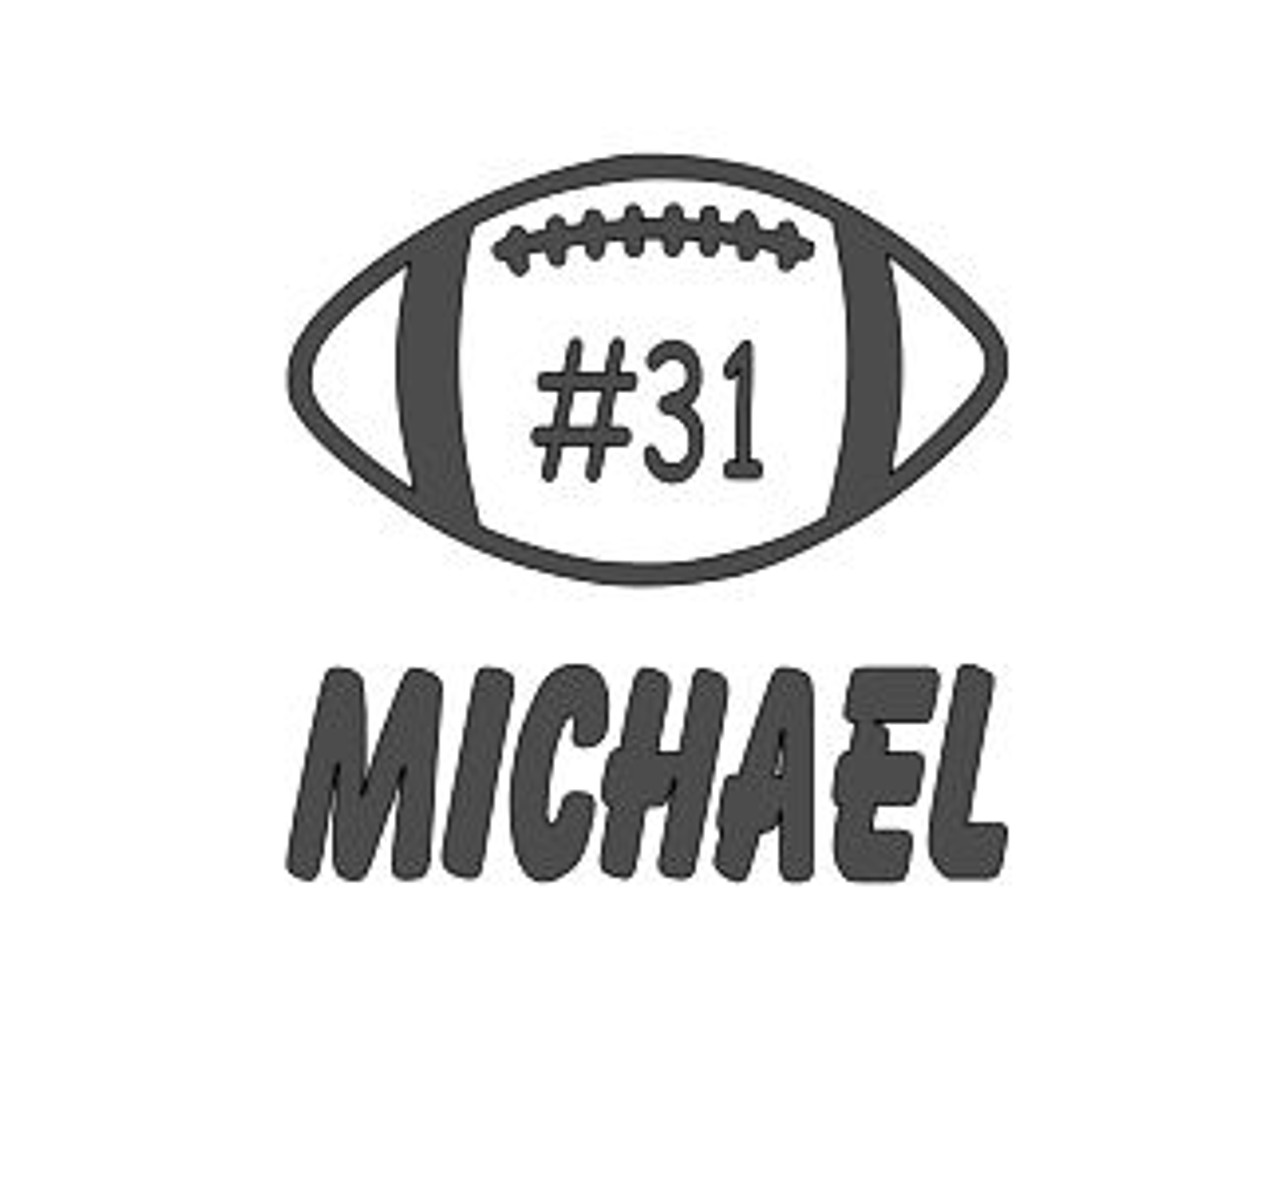 "Football with Name & Number - Vinyl Decal Sticker - 5"" x 4.5"""